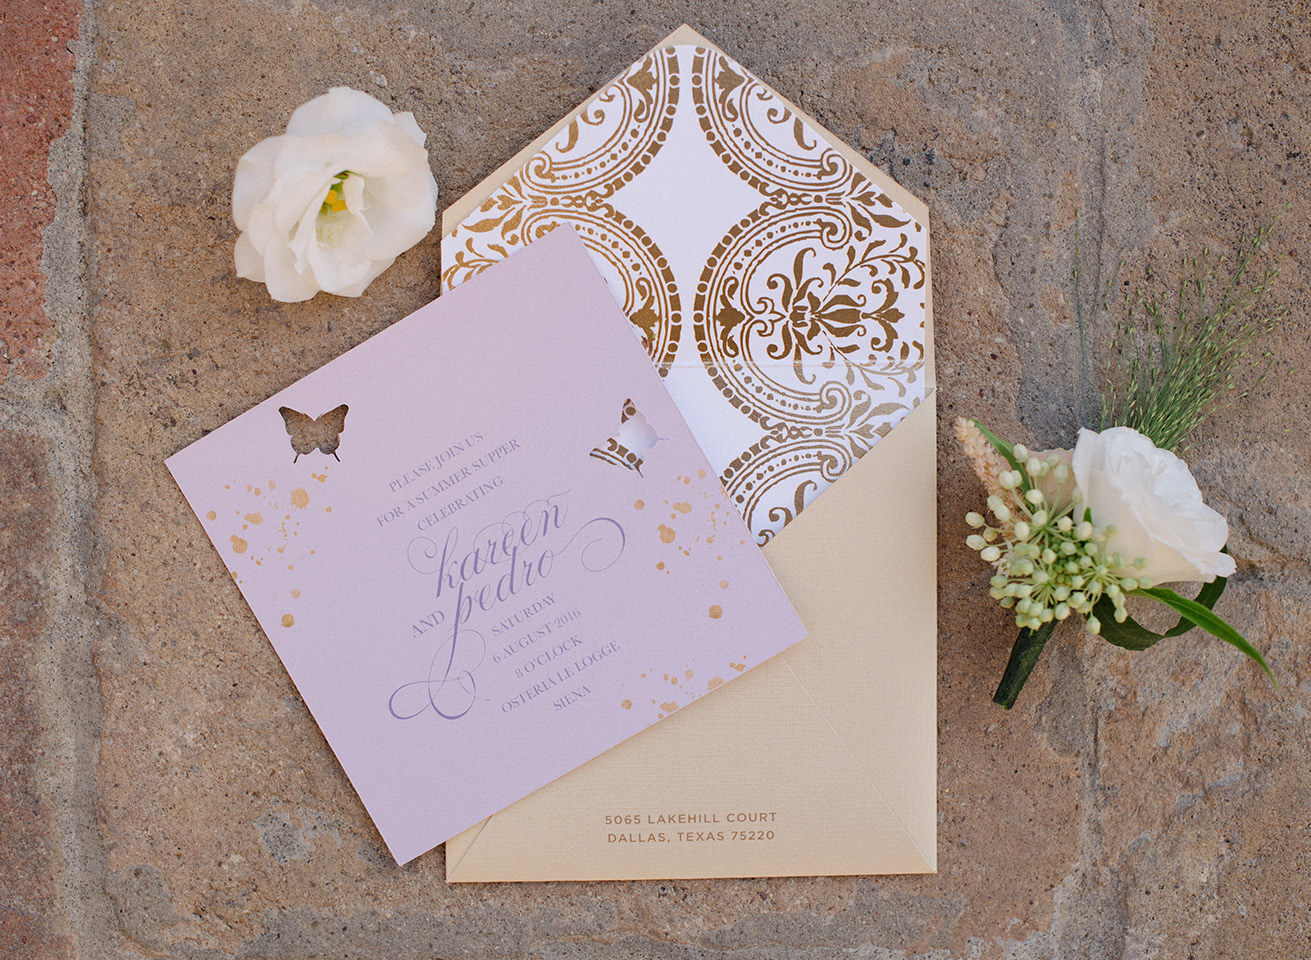 Stationary Details - Castello Di Casole, Italy - Summer Wedding - Julian Leaver Events